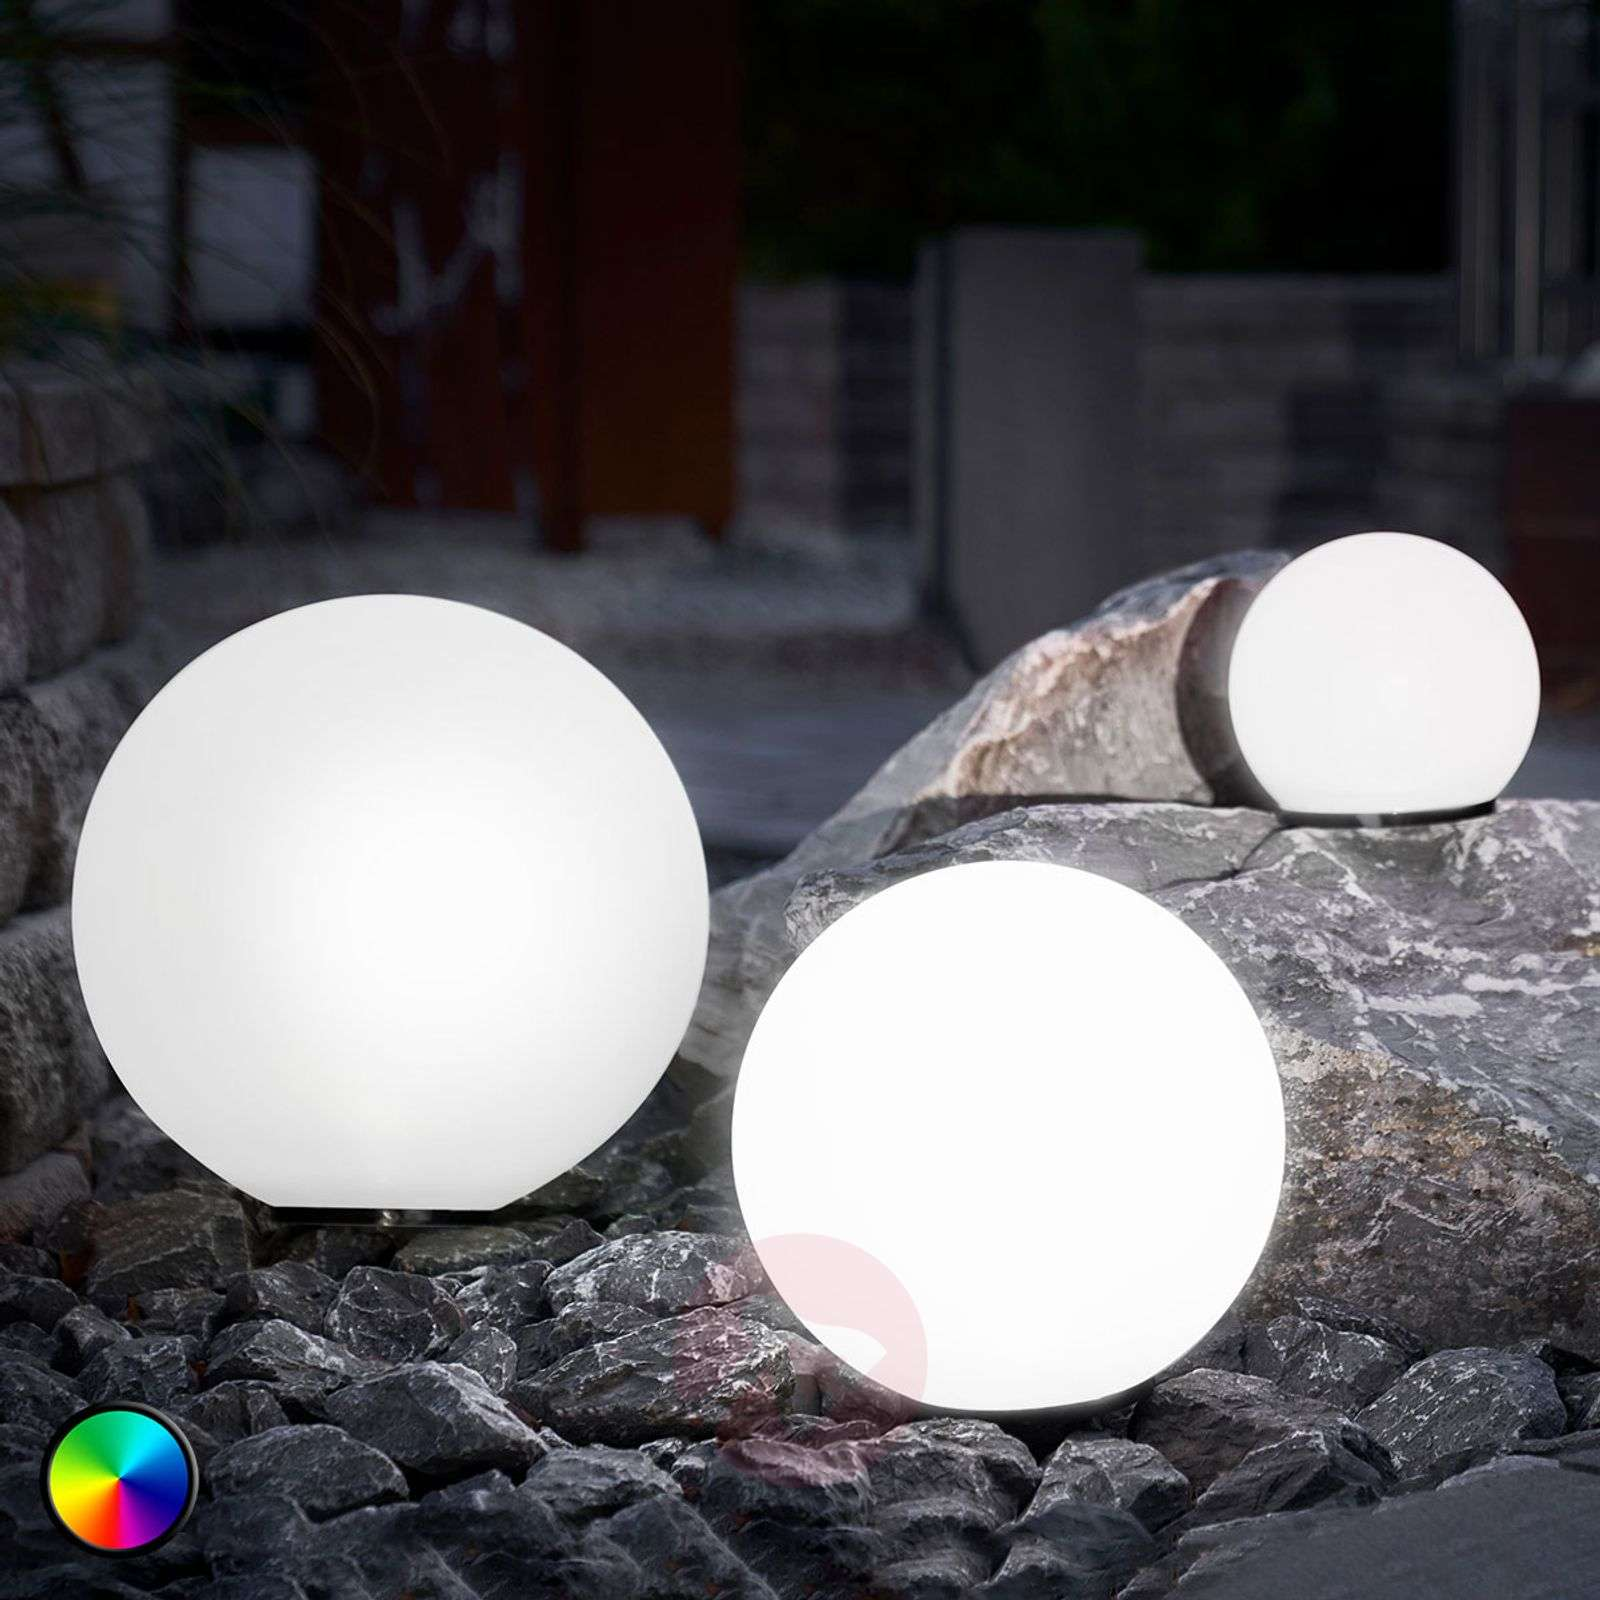 Set of 3 LED solar balls, colour change function-3012559-01